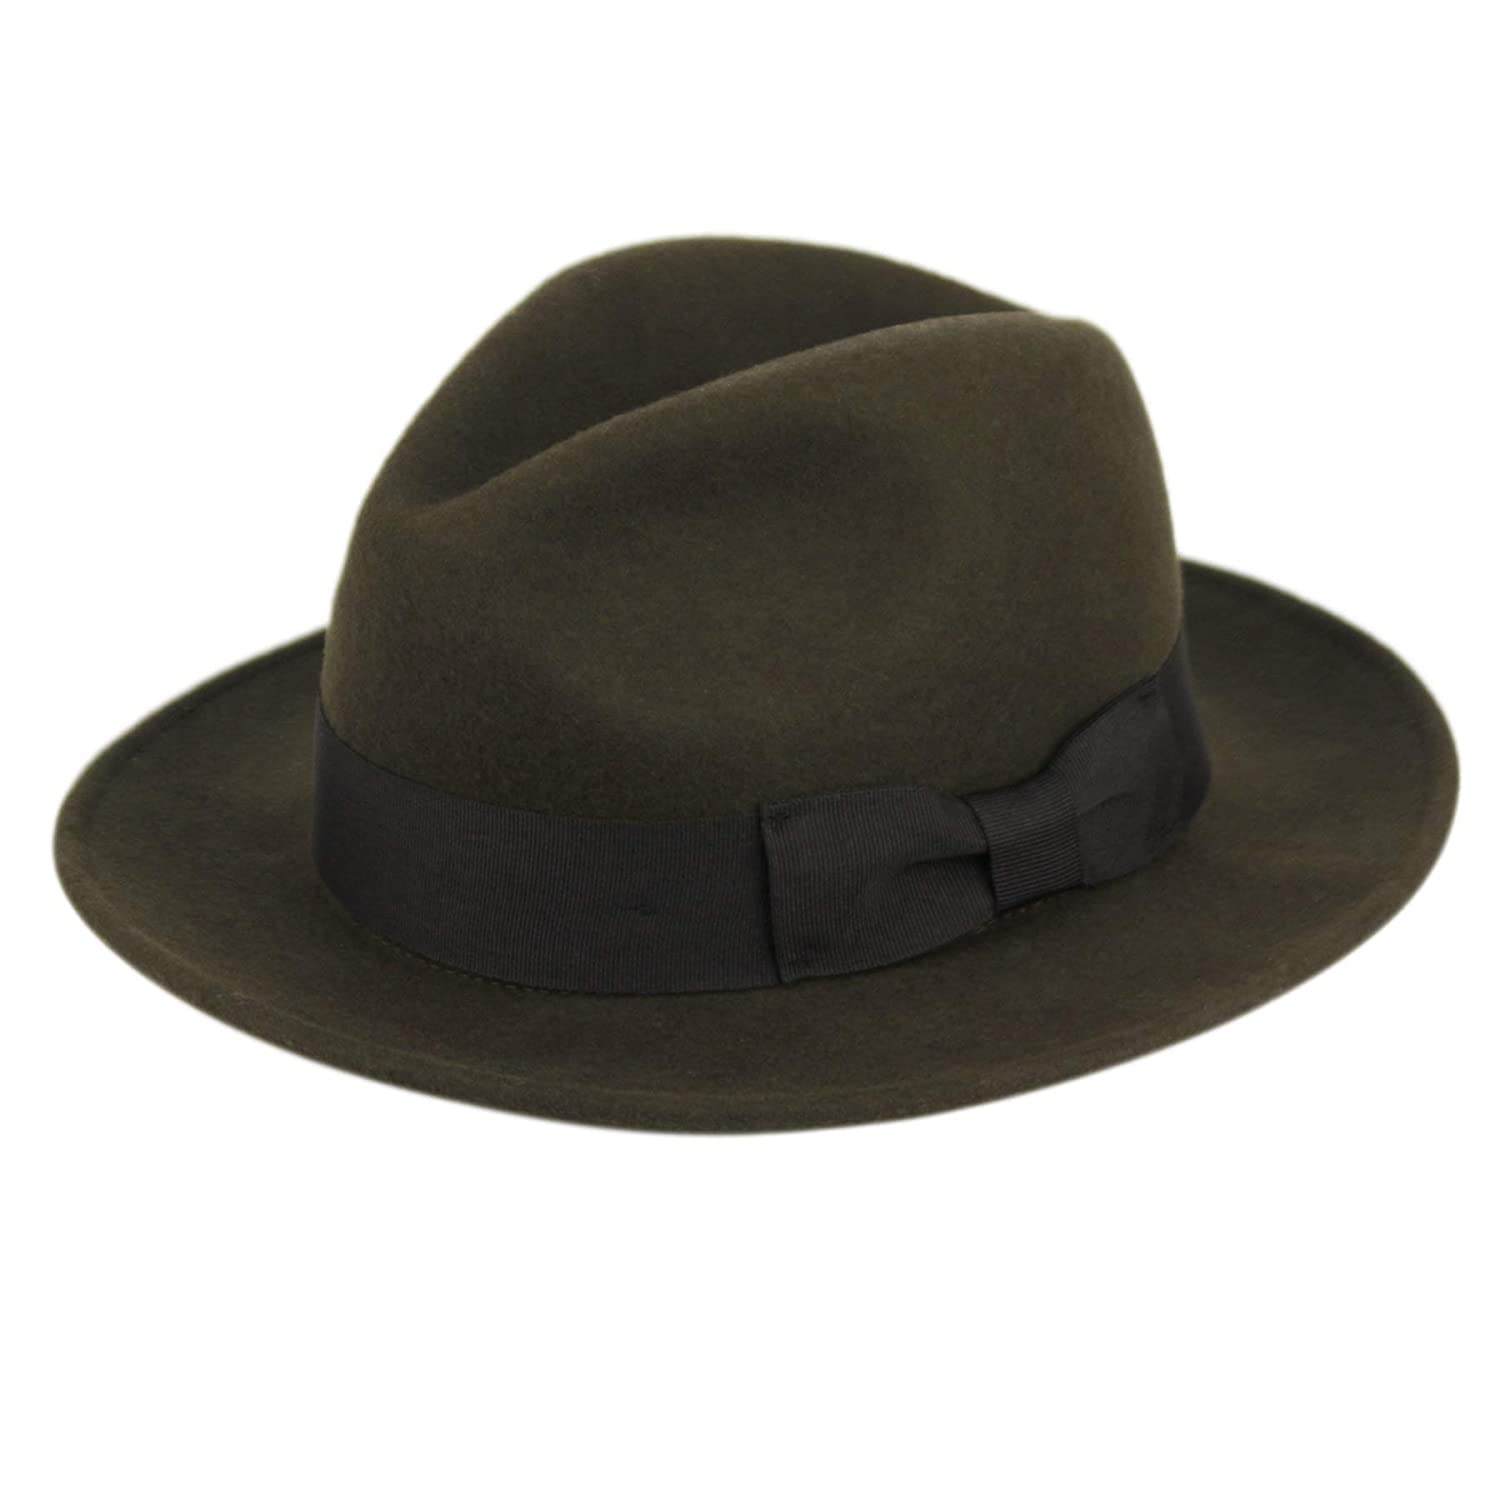 1930s Mens Hat Fashion Mens Premium Milano Wool Felt Fedora Grosgrain Band Hat $39.00 AT vintagedancer.com